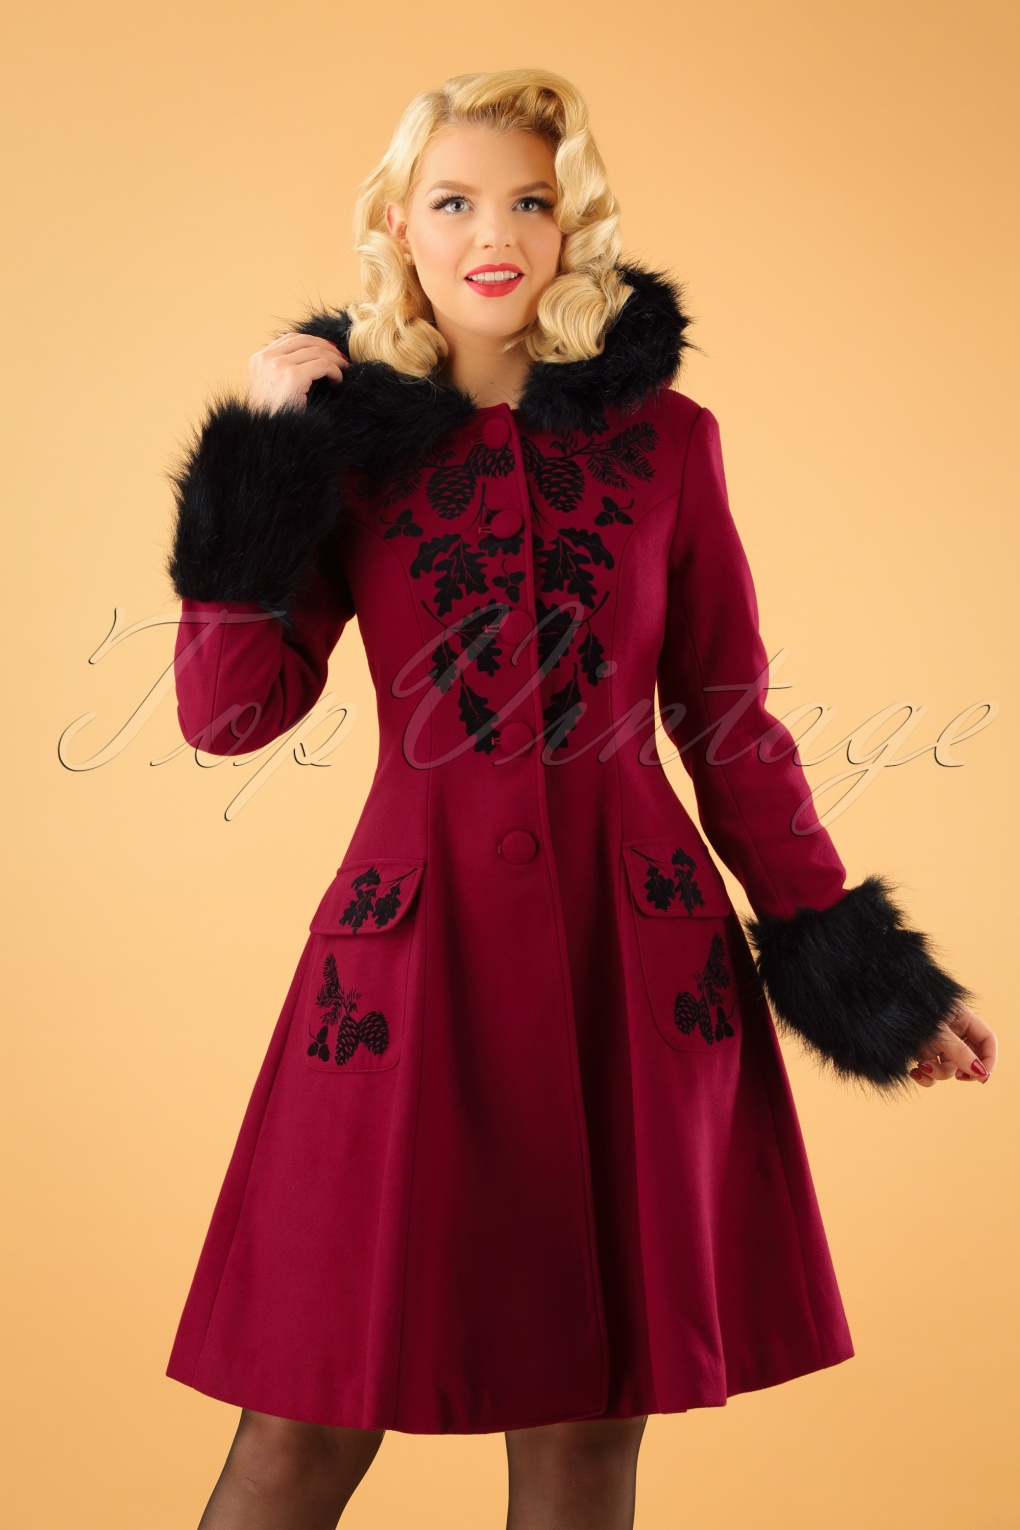 1950s Jackets and Coats | Swing, Pin Up, Rockabilly 50s Sherwood Coat in Burgundy and Black £127.63 AT vintagedancer.com